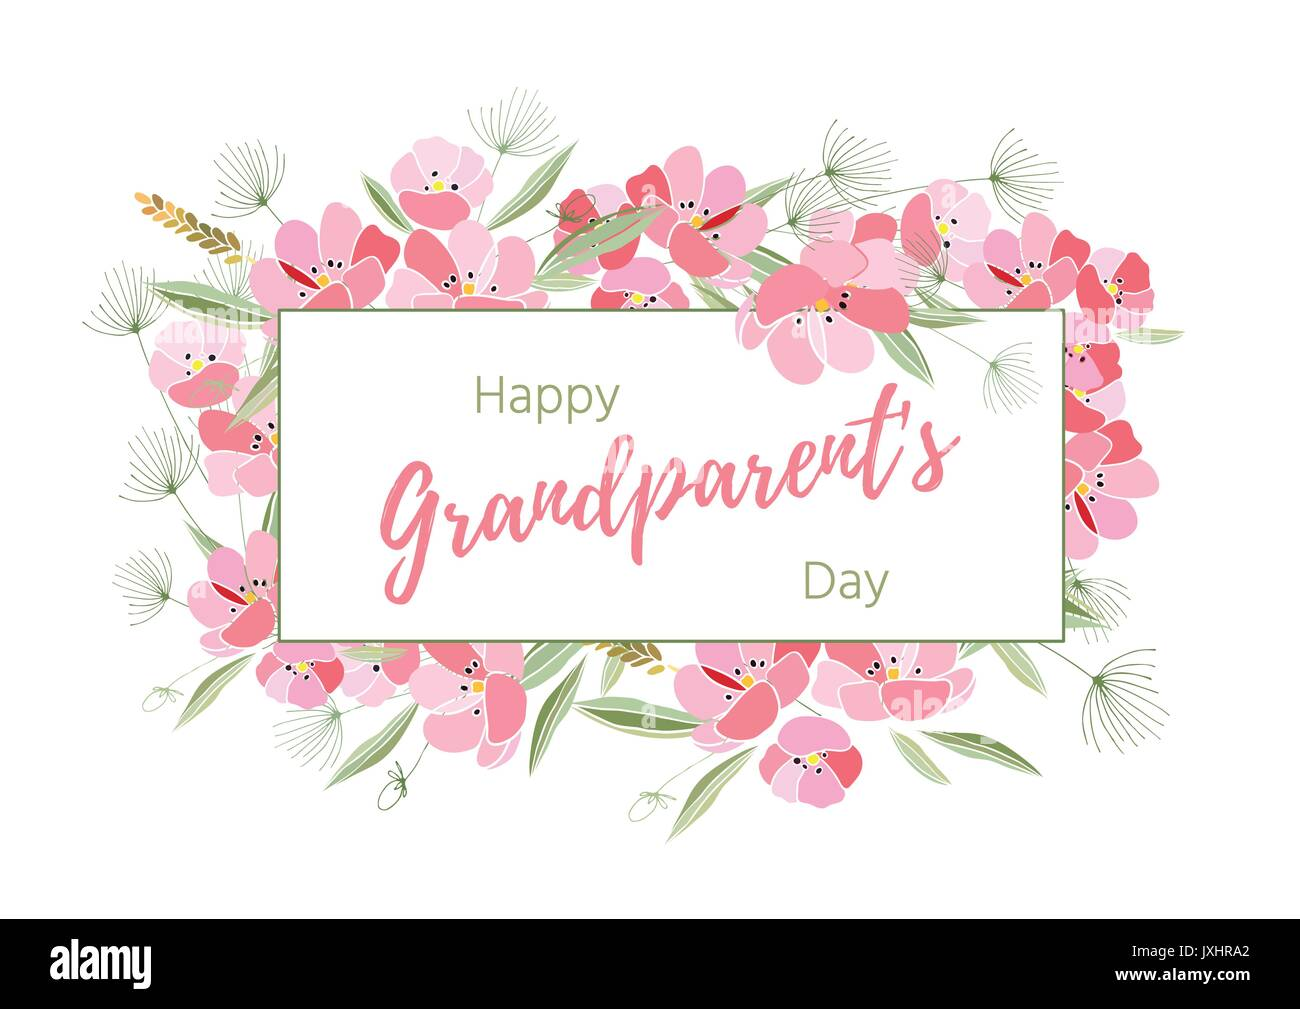 Colorful drawing grandparents day card stock photos colorful holiday greetings illustration grandparents day stock image kristyandbryce Gallery